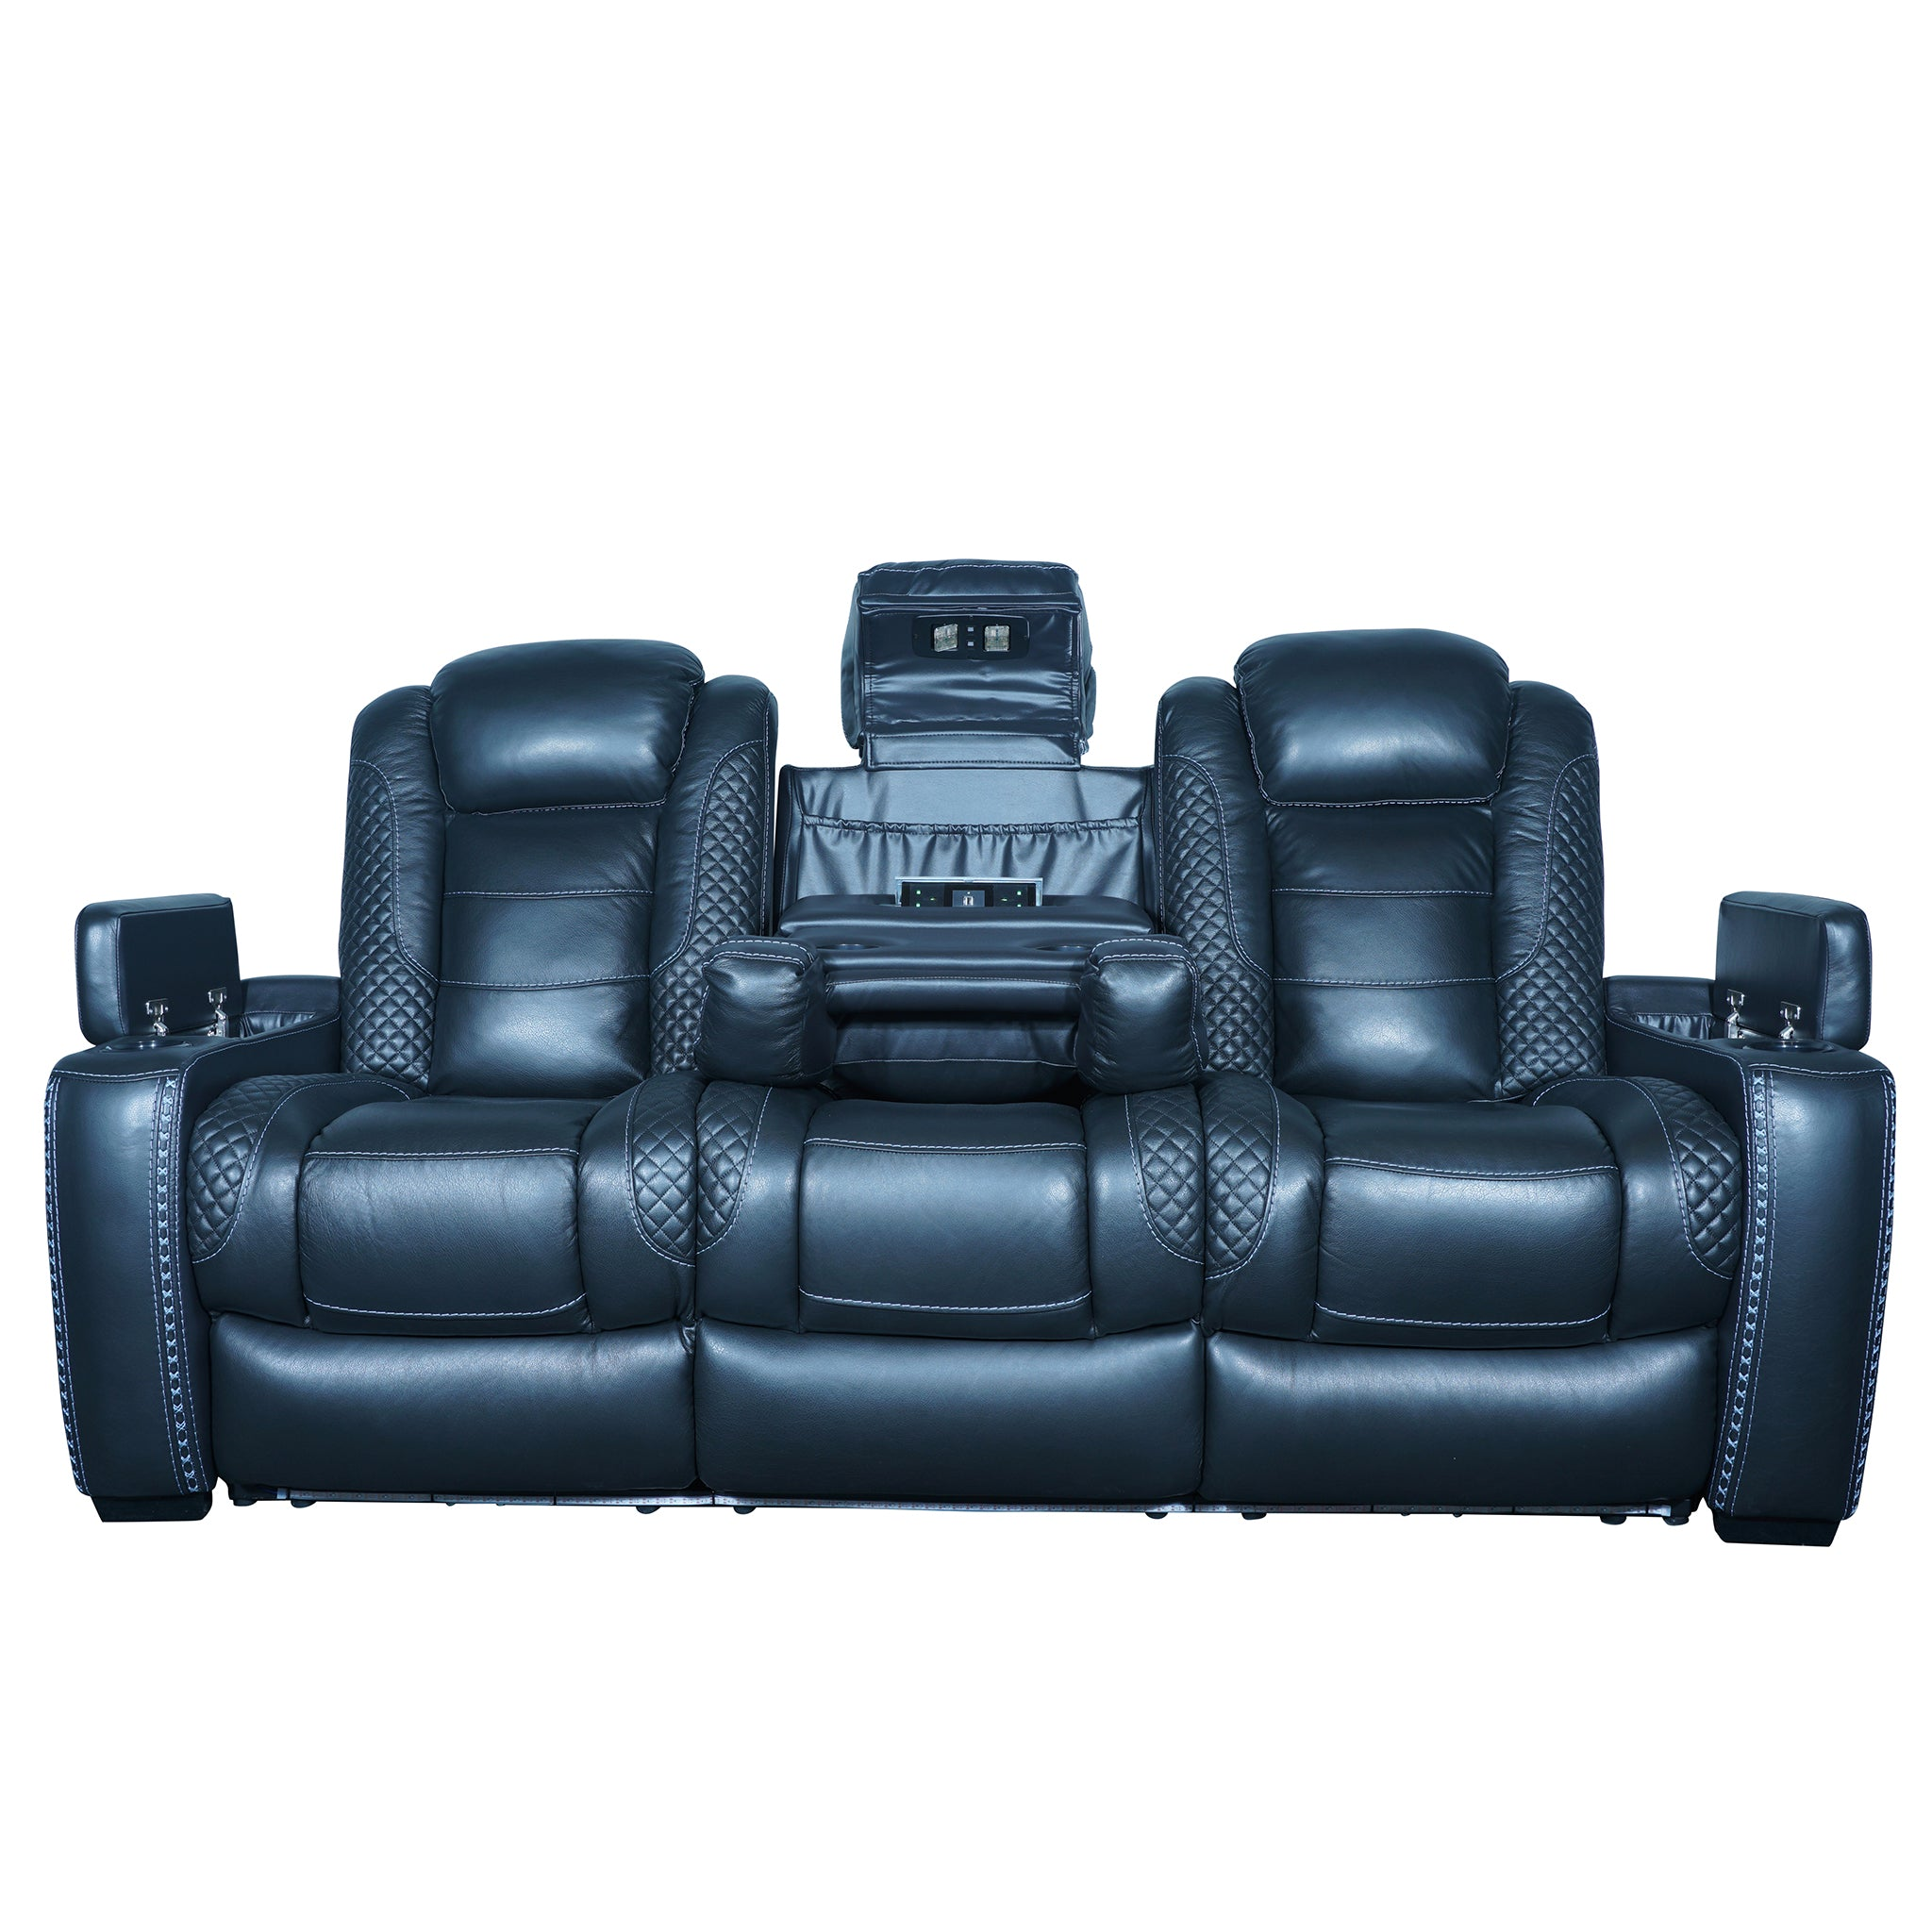 black 3 seater sofa home theater electric recliner with storage and cupholder